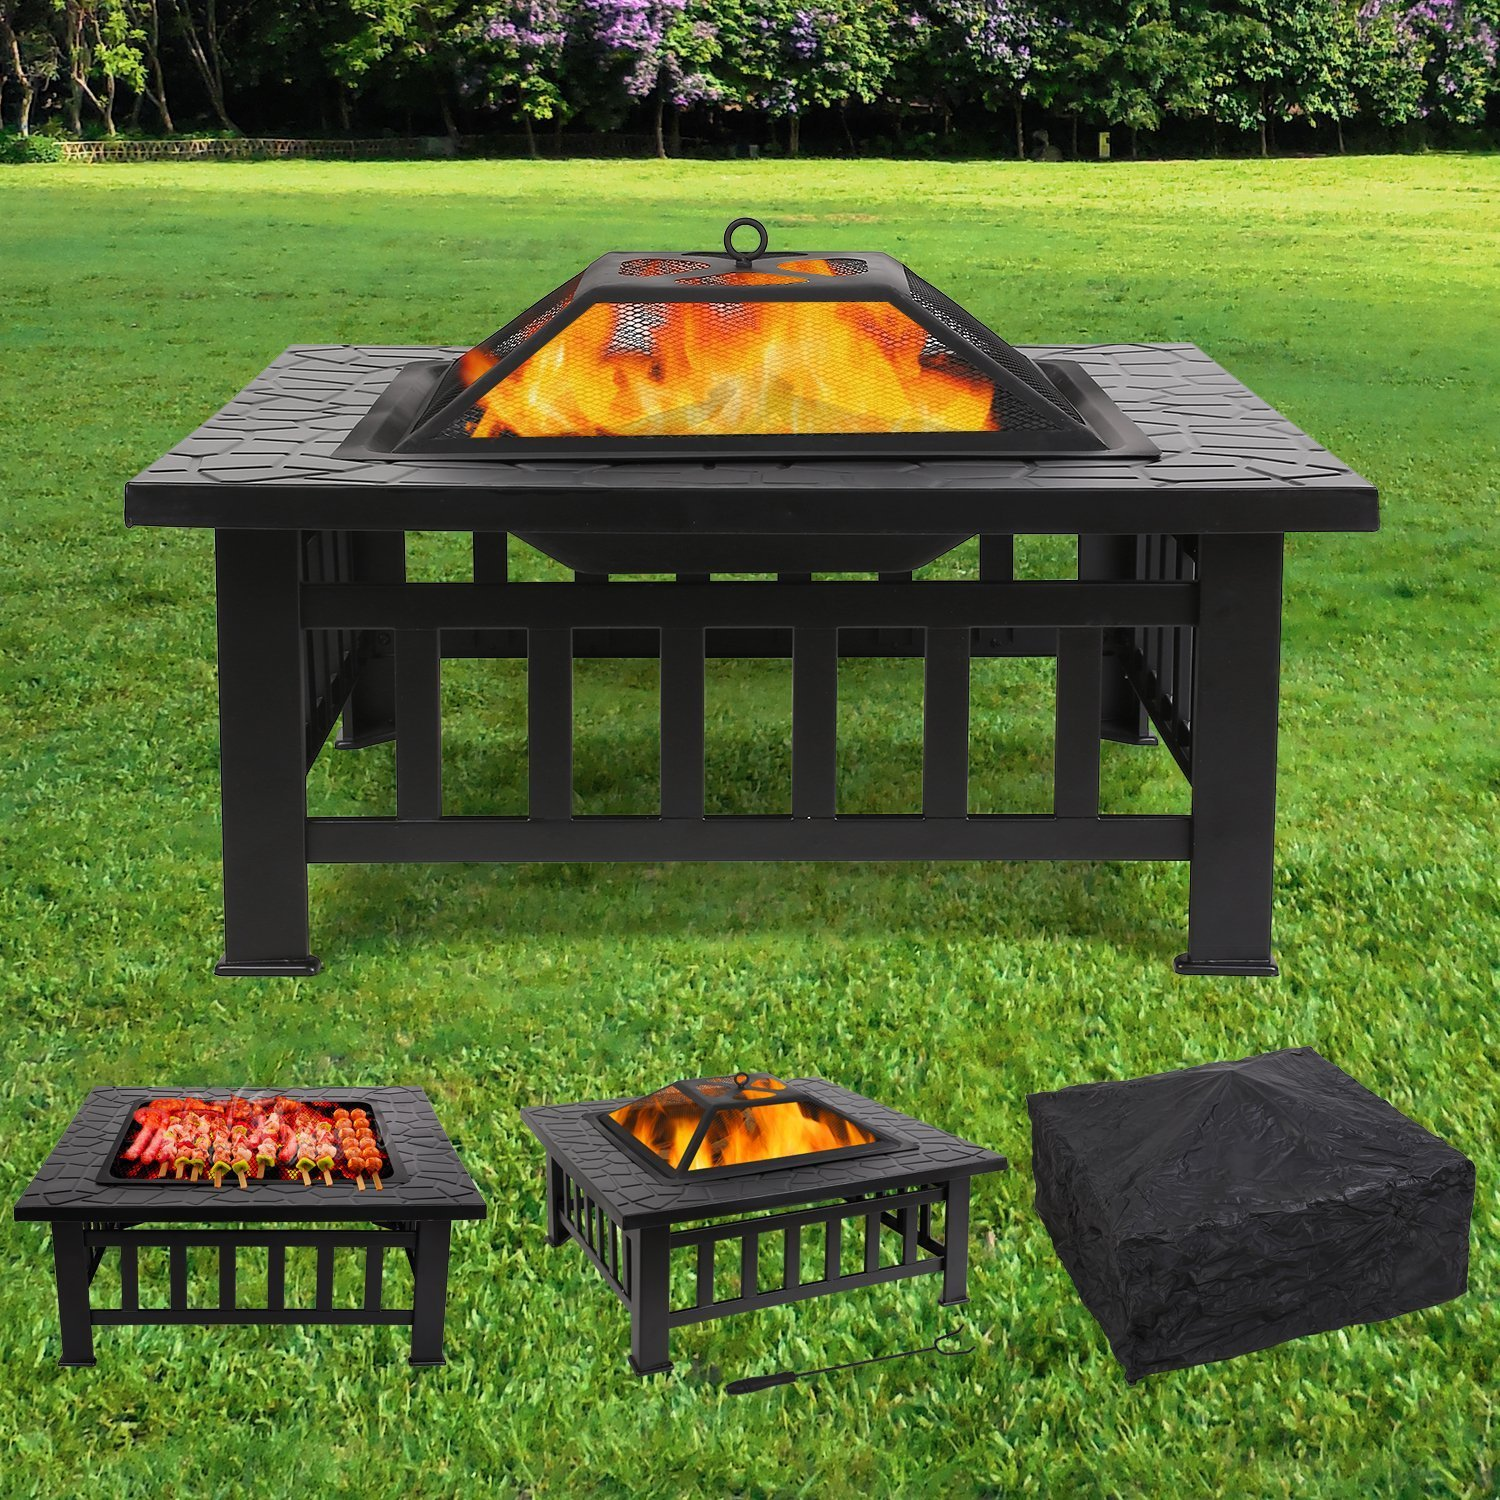 femor Feuerstelle mit Grillrost 81x81x45cm, Multifunktional Fire Pit